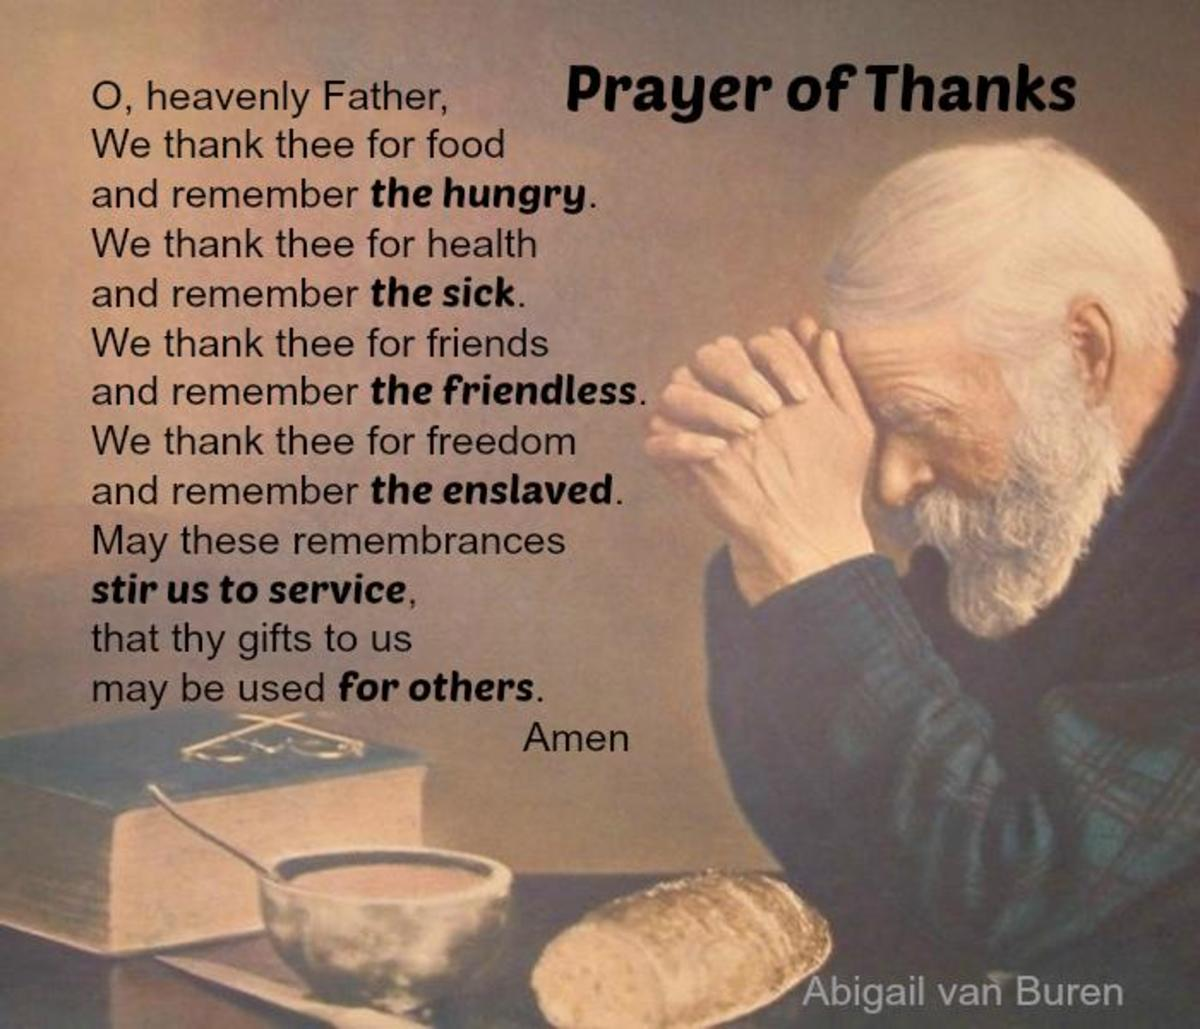 Prayer of Thanks by Abigail van Buren, the original Dear Abby